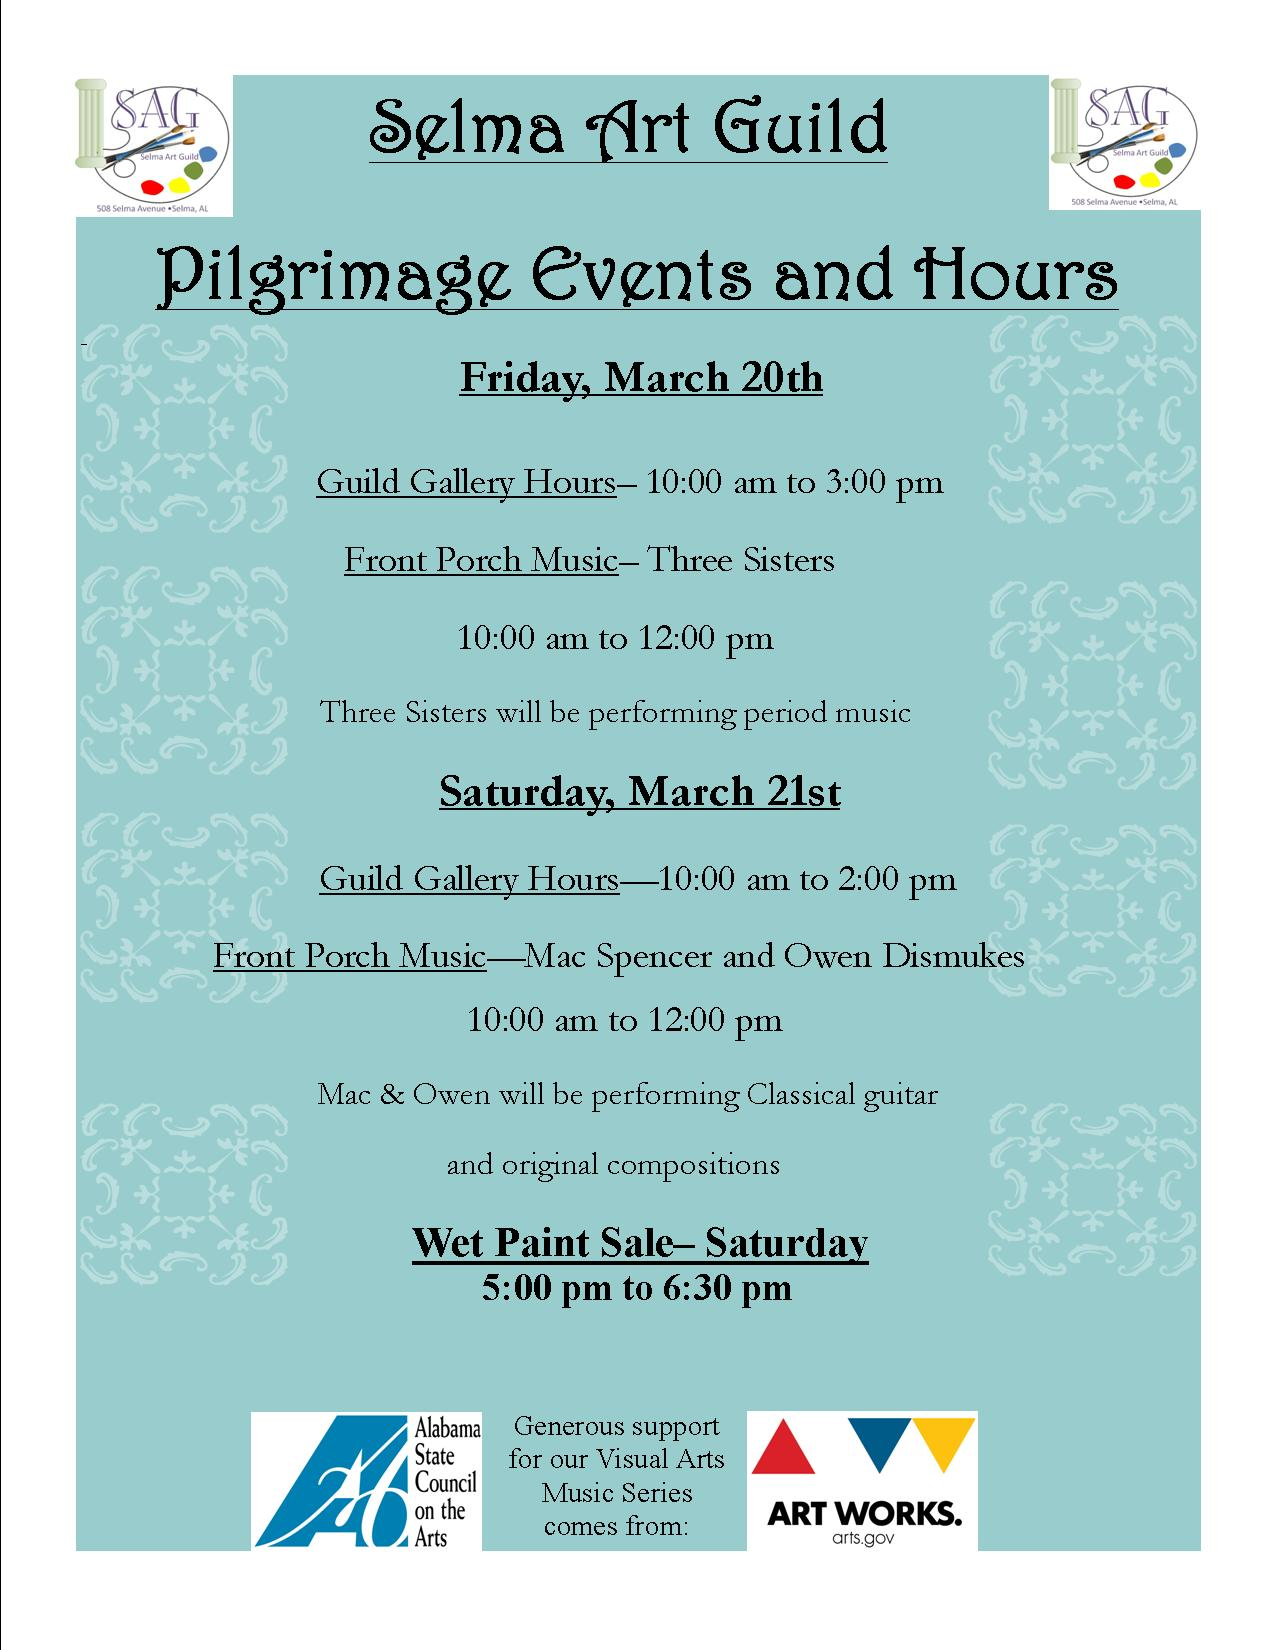 Selma Art Guild Pilgrimage Events.jpg